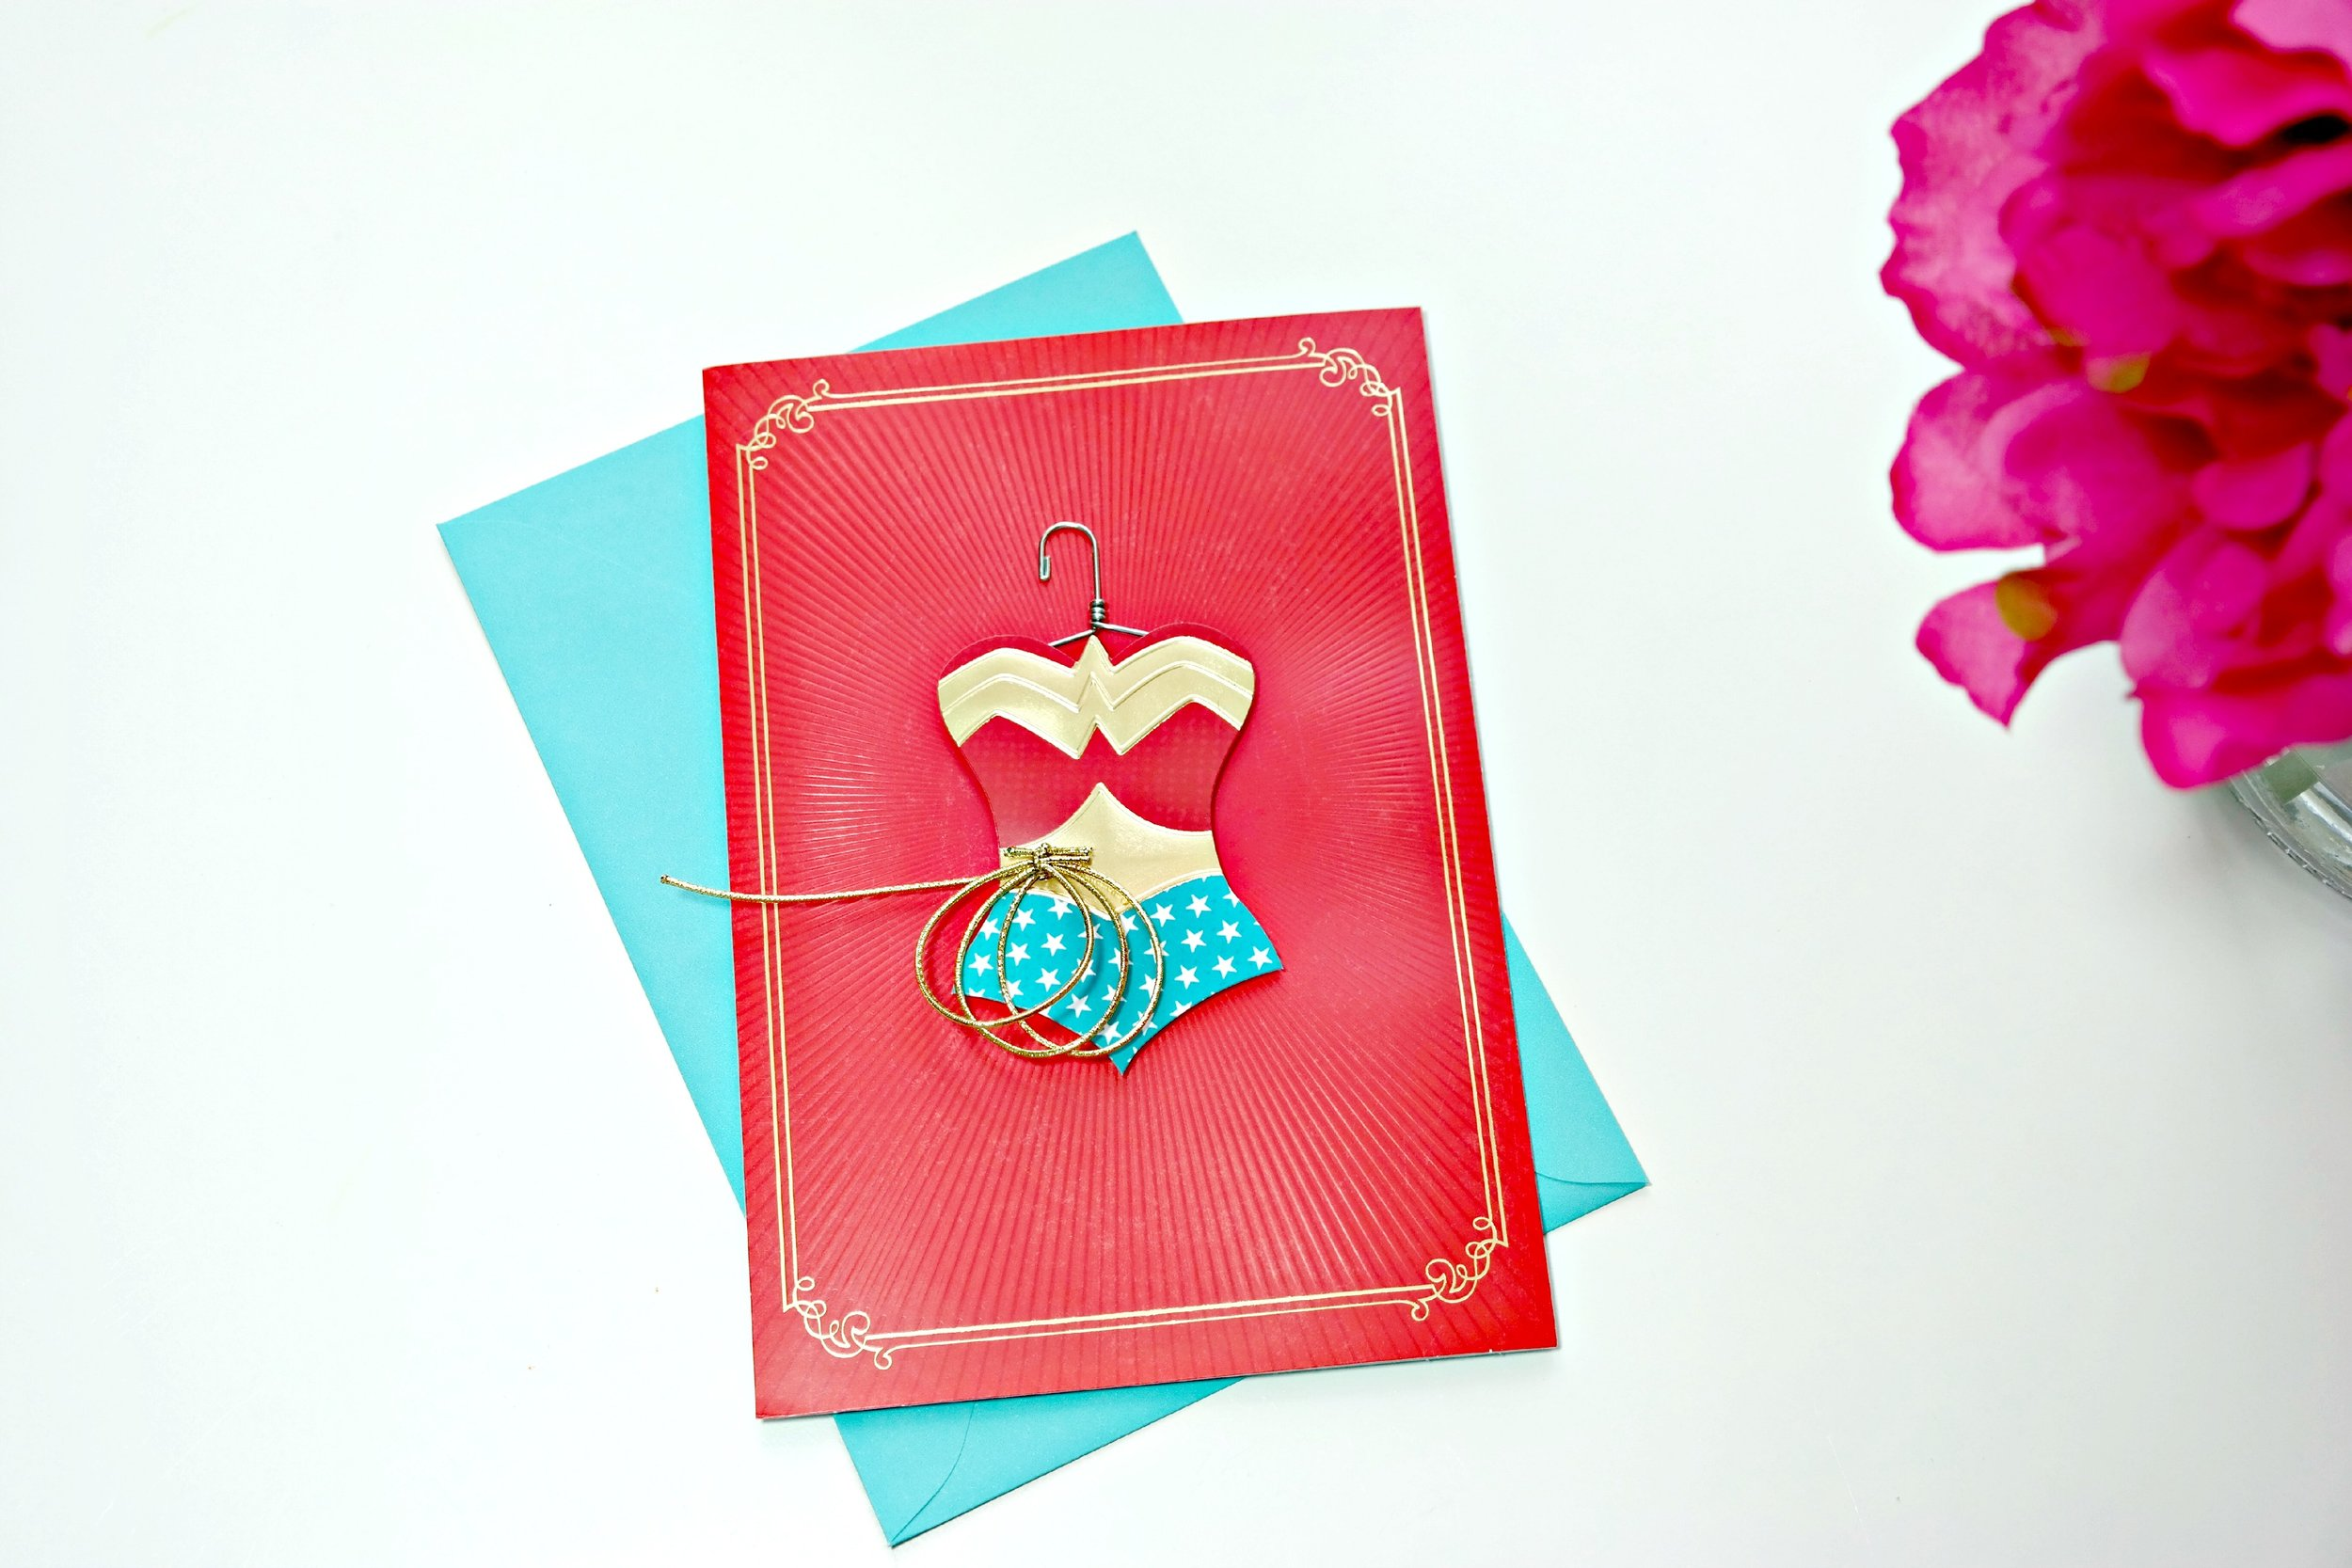 Hallmark helps us put your heart to paper with awesomeness like this!